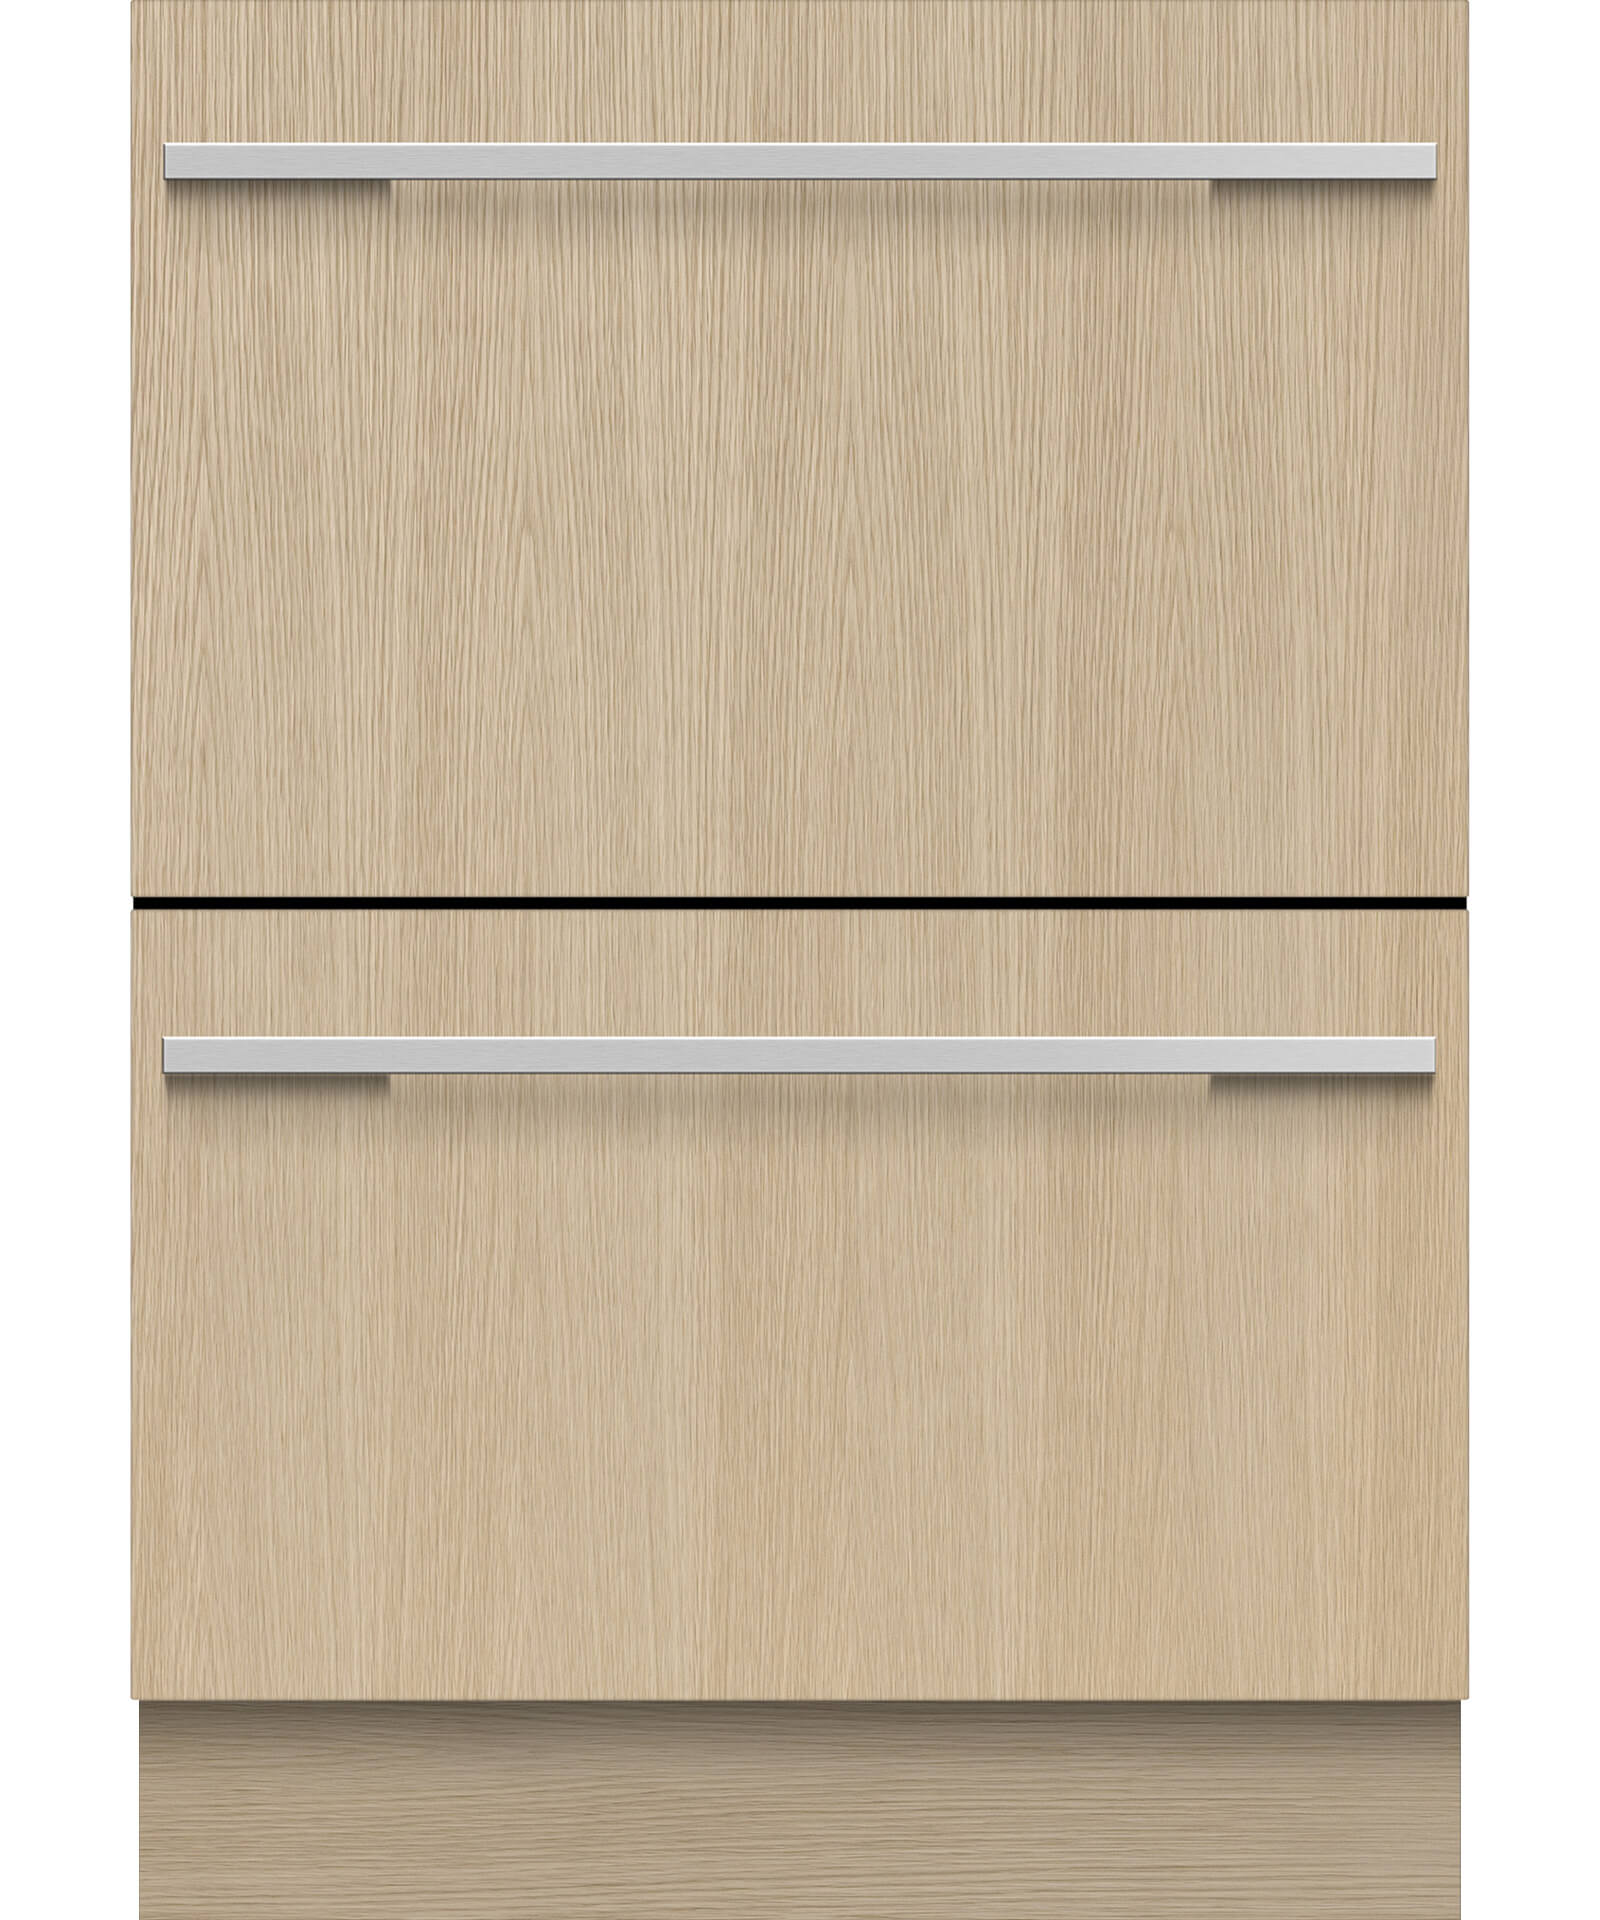 Double DishDrawer™ Dishwasher, 14 Place Settings, Panel Ready